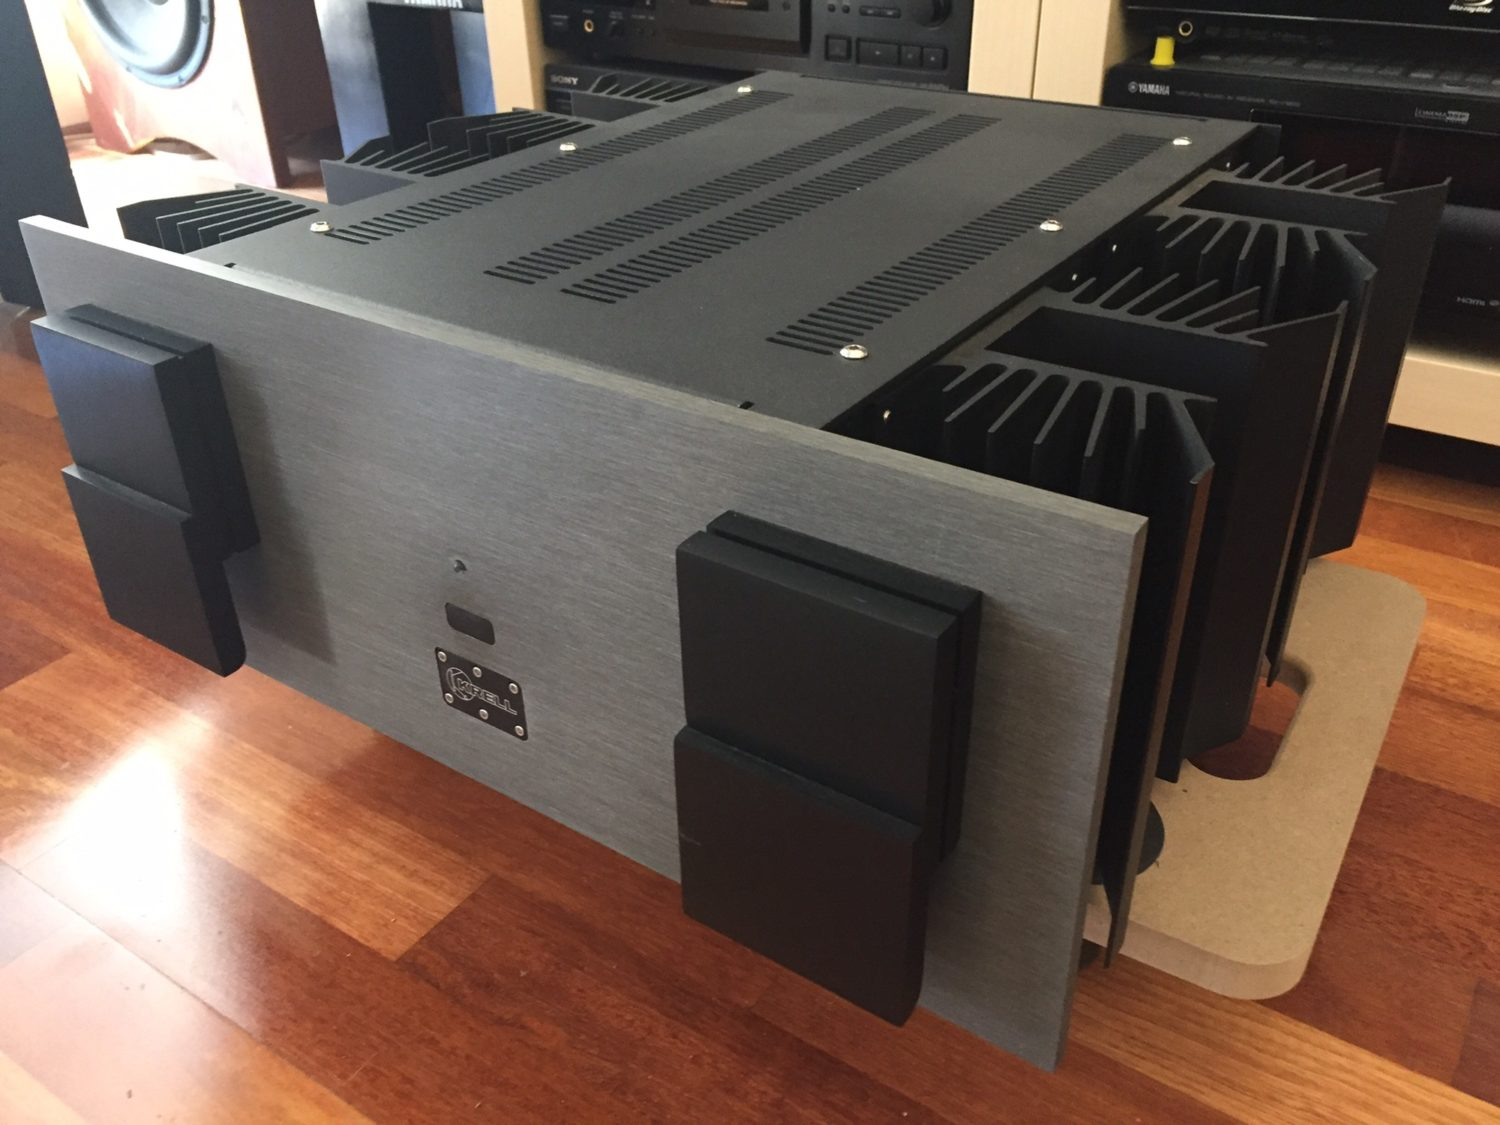 Krell KSA-150 Amplifier Repair & Restoration